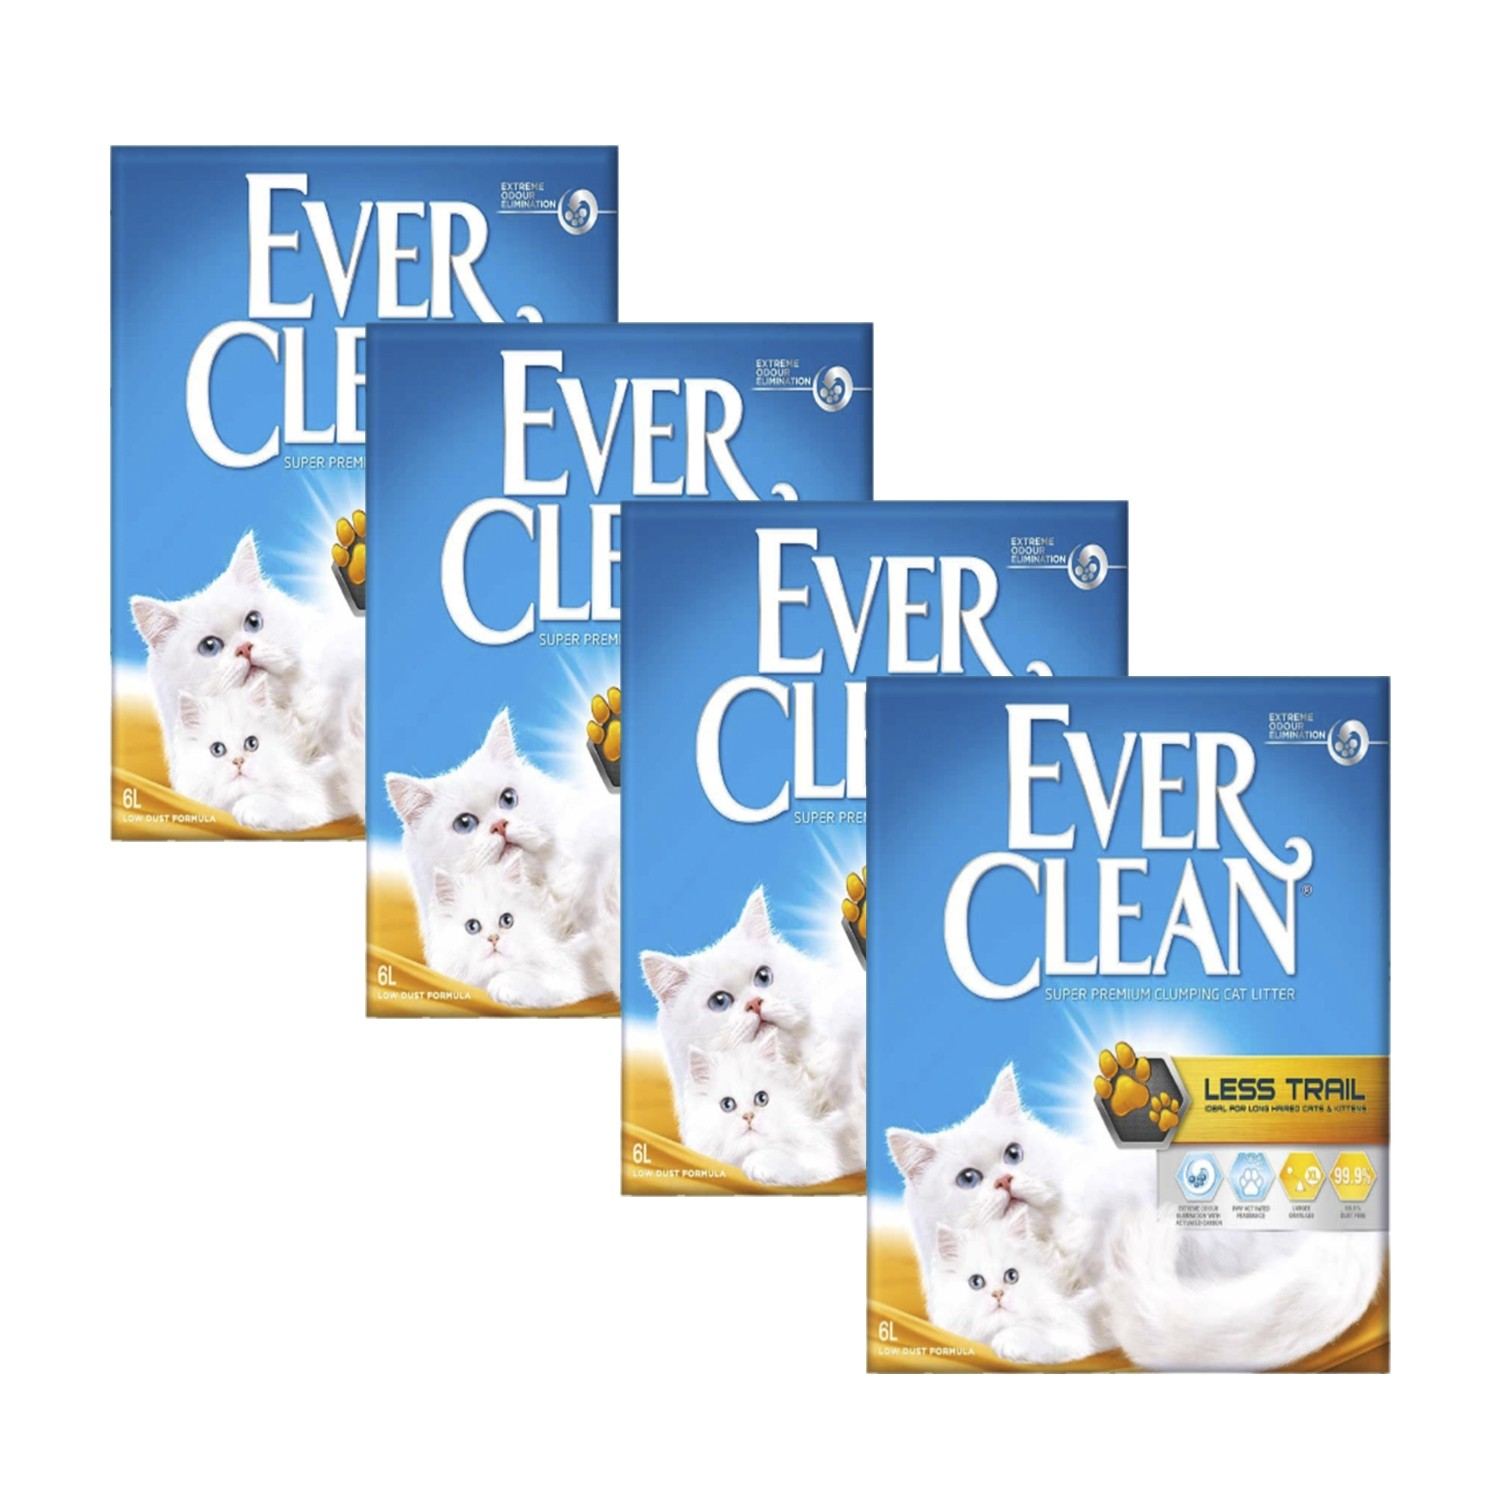 Ever Clean 4'lü Less Trail Kedi Kumu Paketi - 4 Adet x 6 Lt.